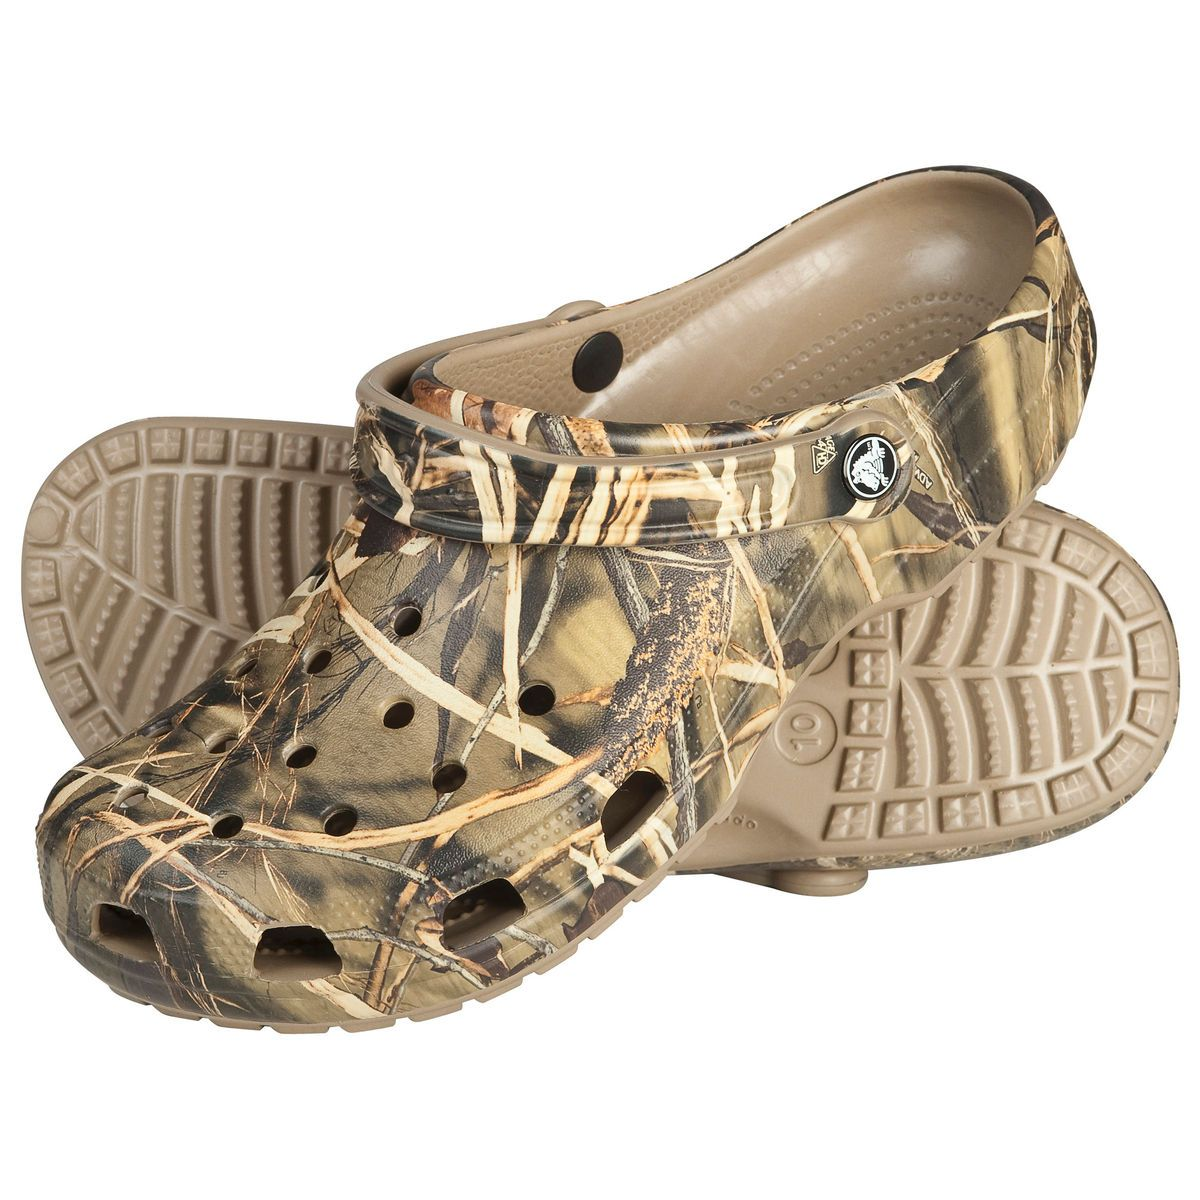 929669d34aed0 Crocs Classic Realtree V2 Shoe-446649 - Gander Mountain | Realtree ...